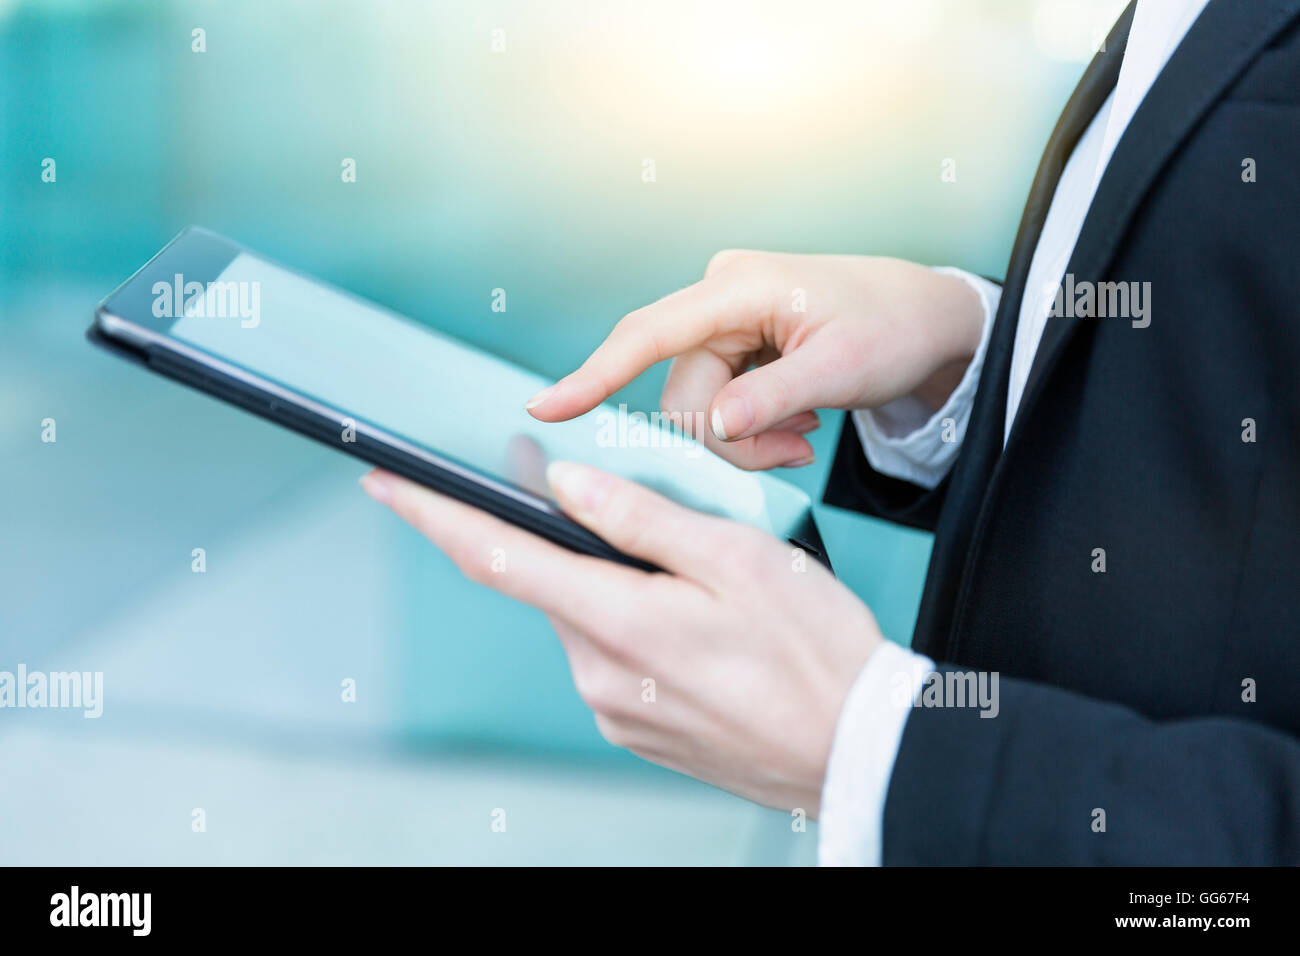 Businesswoman using a digital tablet Photo Stock